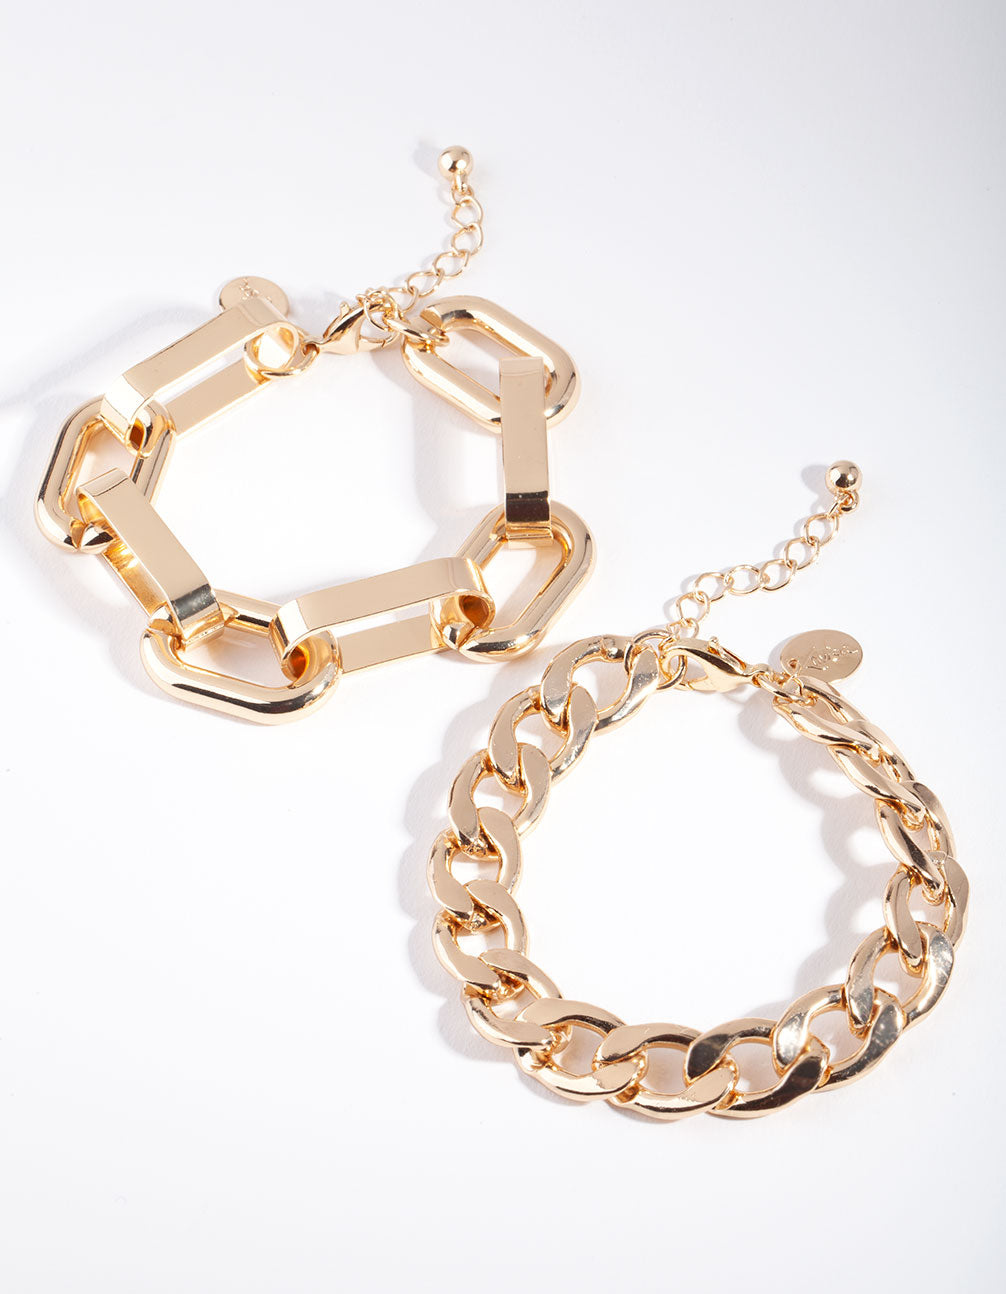 Gold Curb and Chunky Chain Link Bracelet 2 Pack